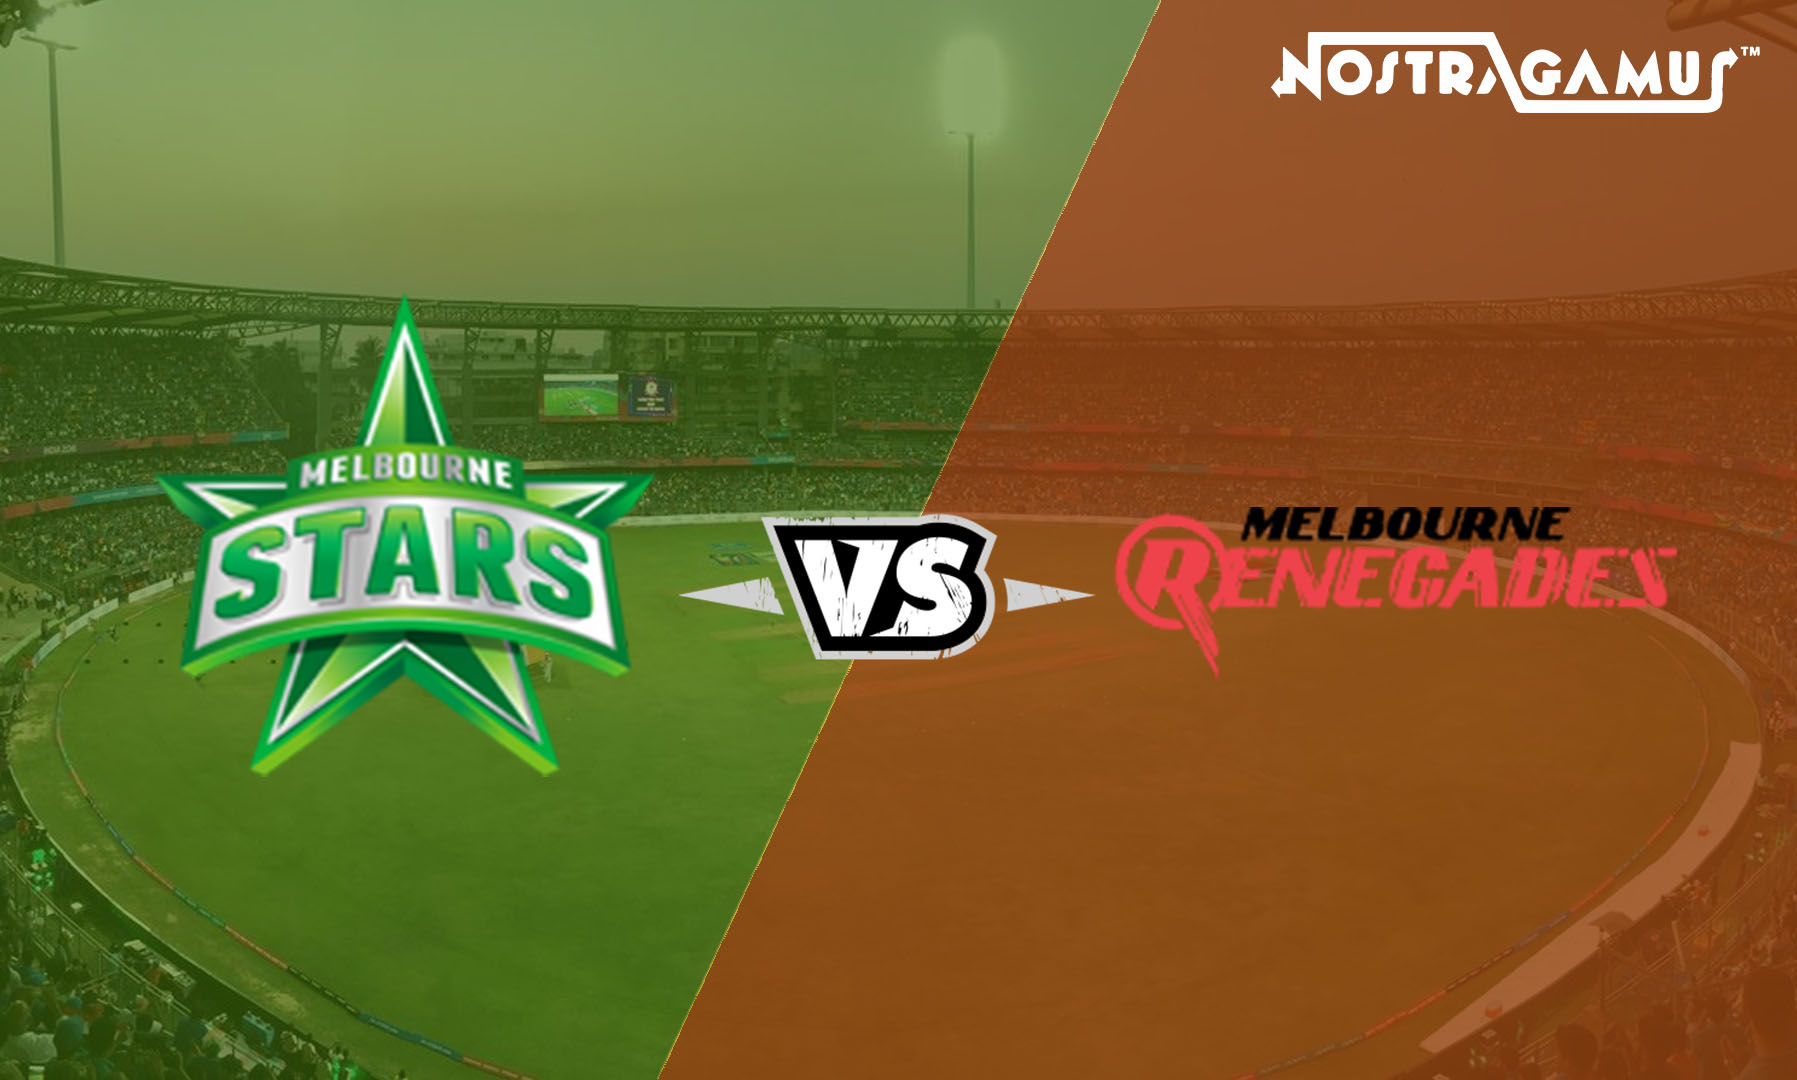 BBL 2019 Match Prediction: Melbourne Renegades vs Melbourne Stars